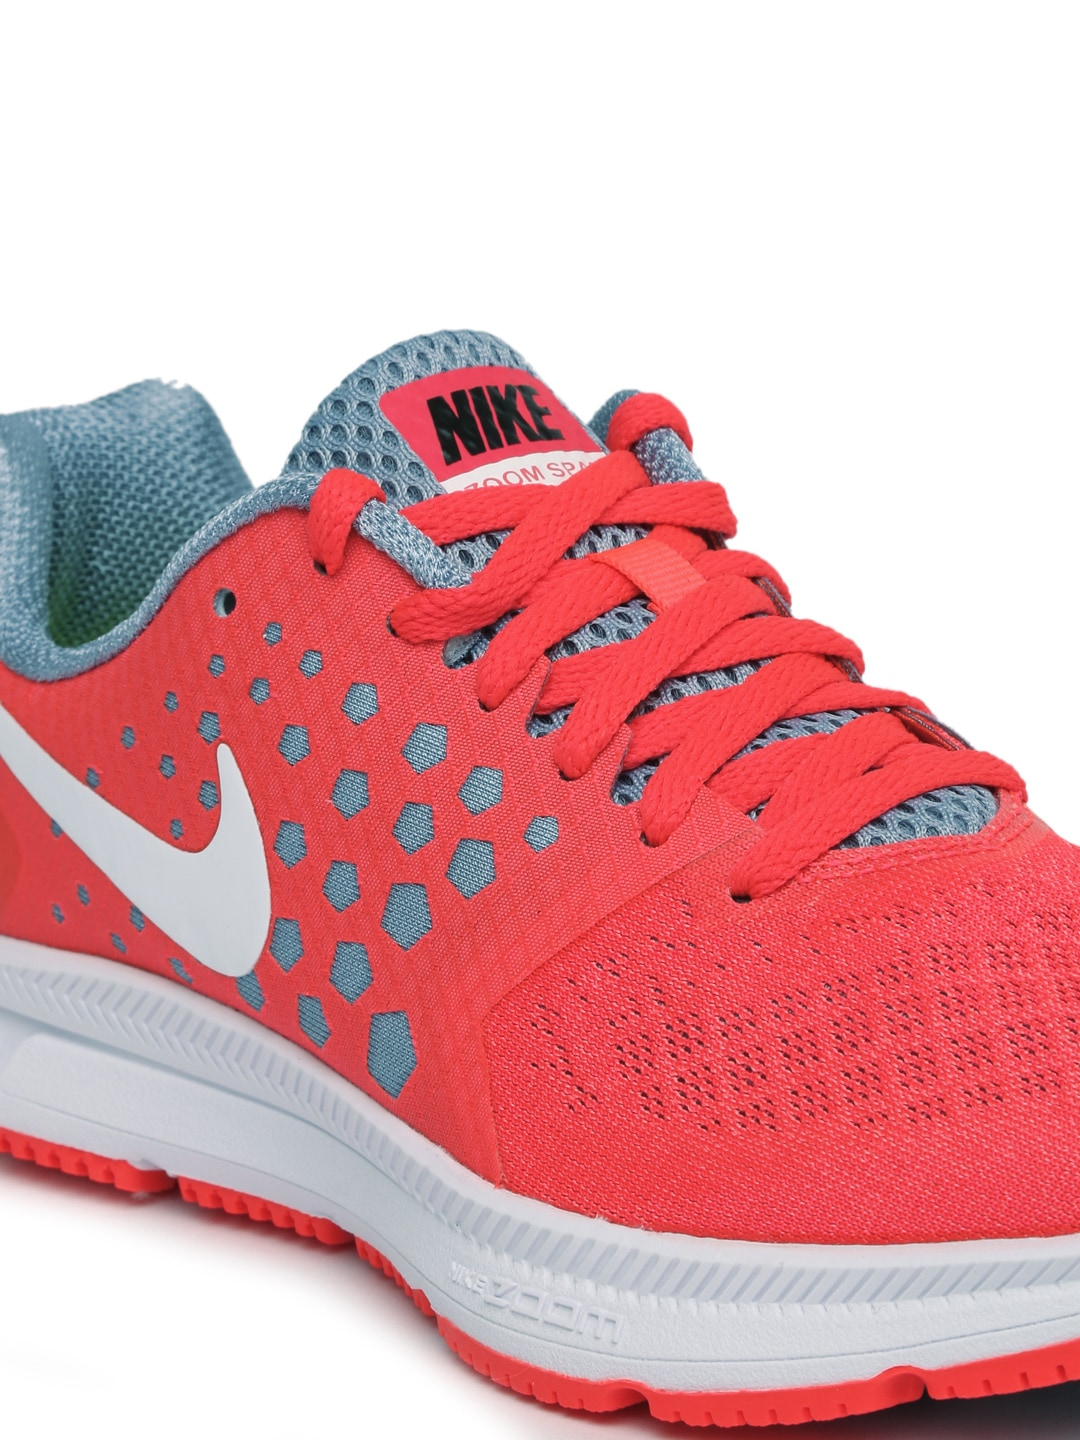 ... nike running shoes buy nike running shoes online myntra